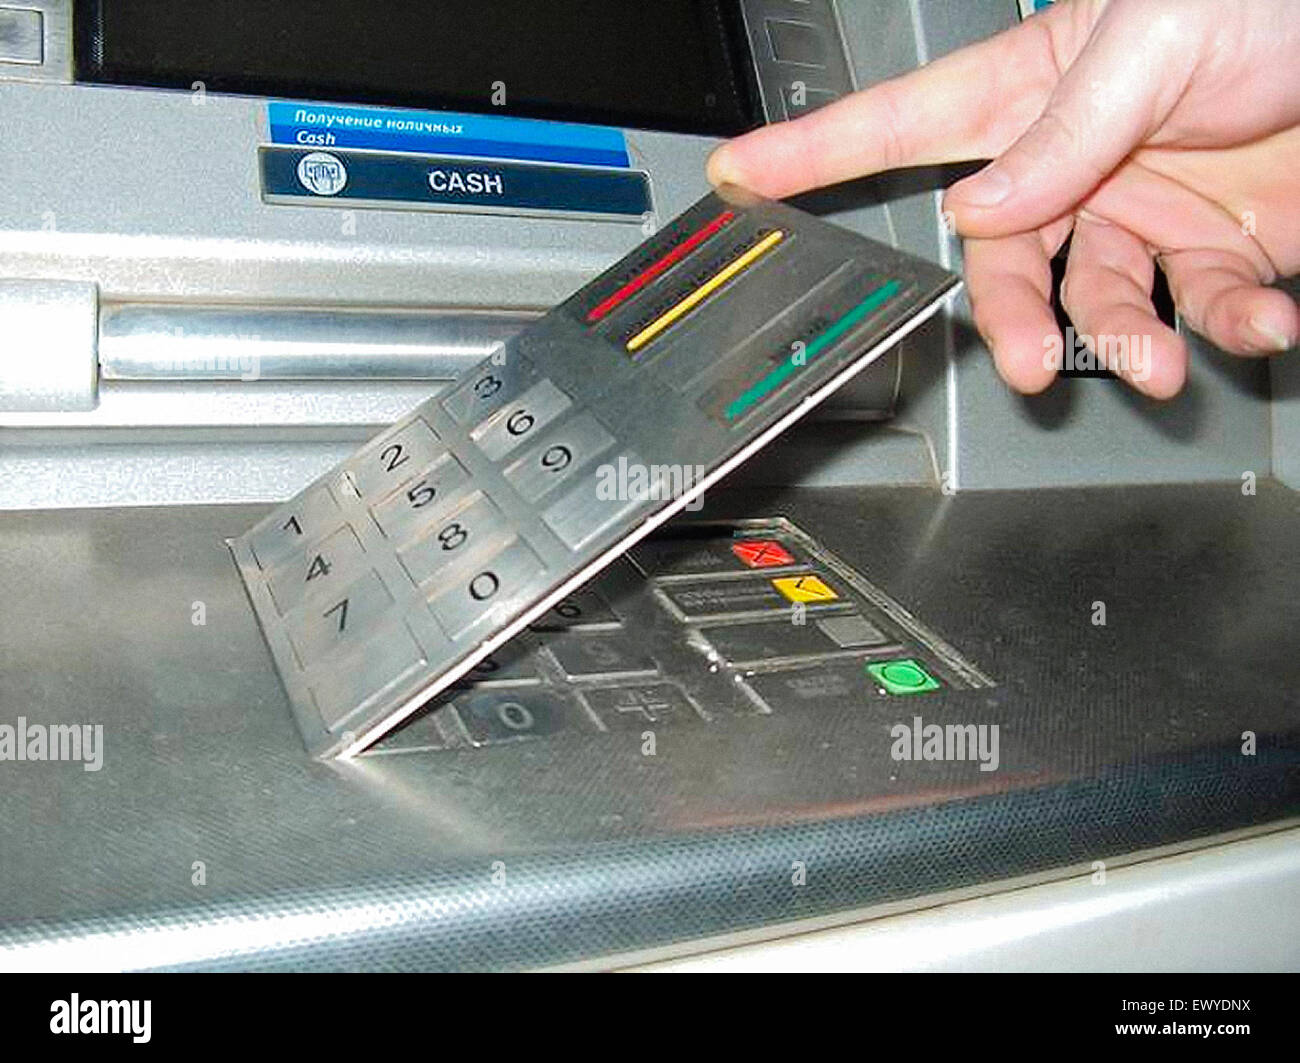 atm For On Alamy - Skimming Card Cash Used Keyboard Overlay Photo False Machine 84811382 Stock